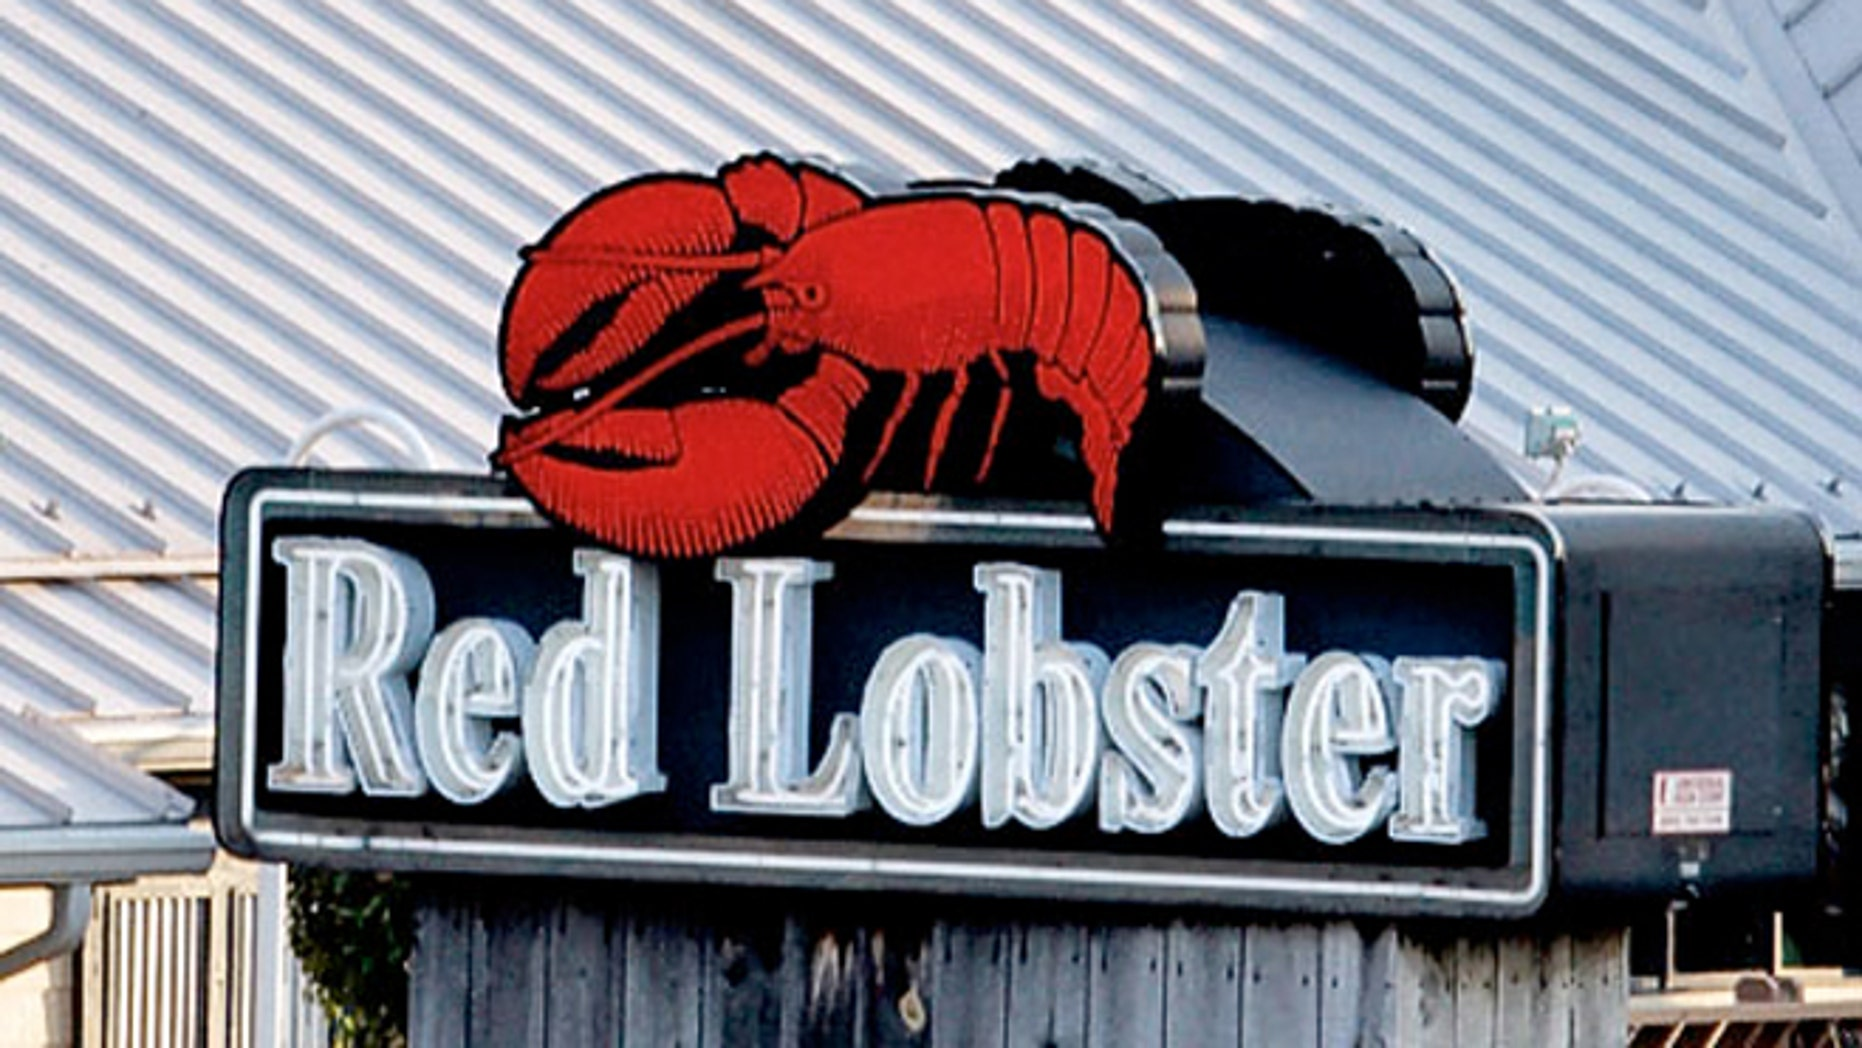 Reb Lobster is hoping to broaden its appeal by revamping its menu on Oct. 15 to boost the number of dishes that cater to diners who don't want seafood.